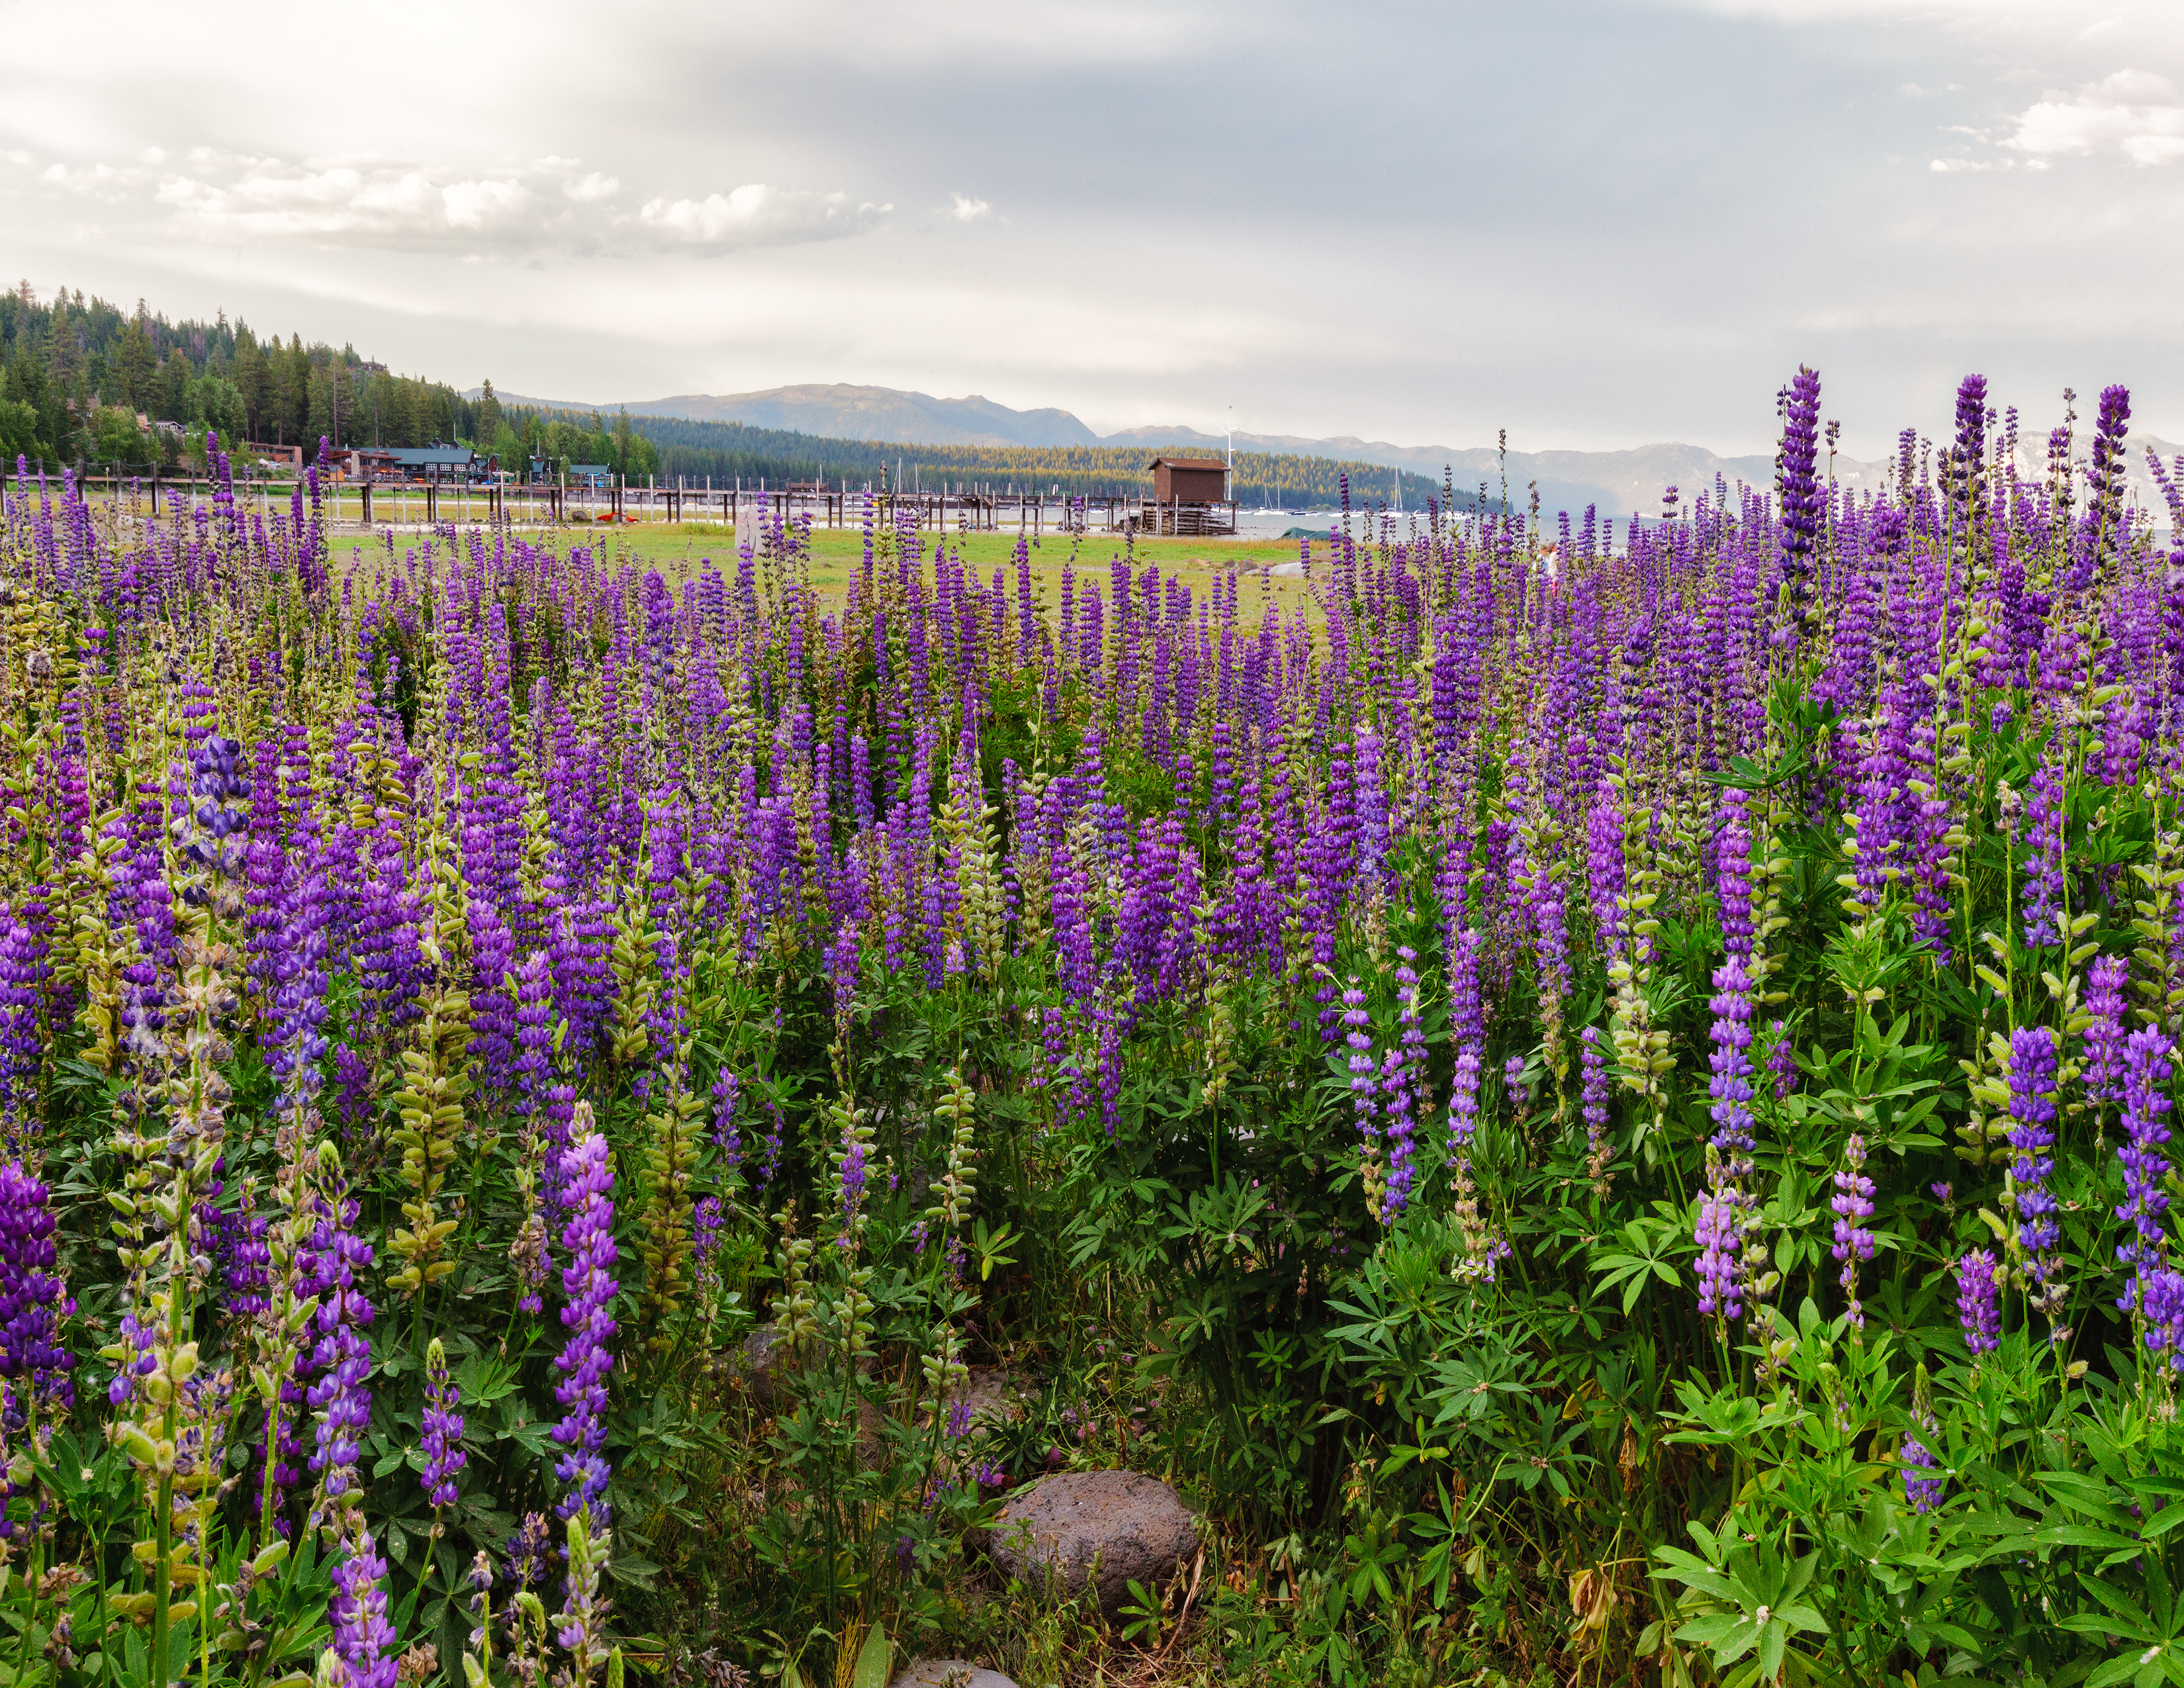 BoathouseThrough The Lupin